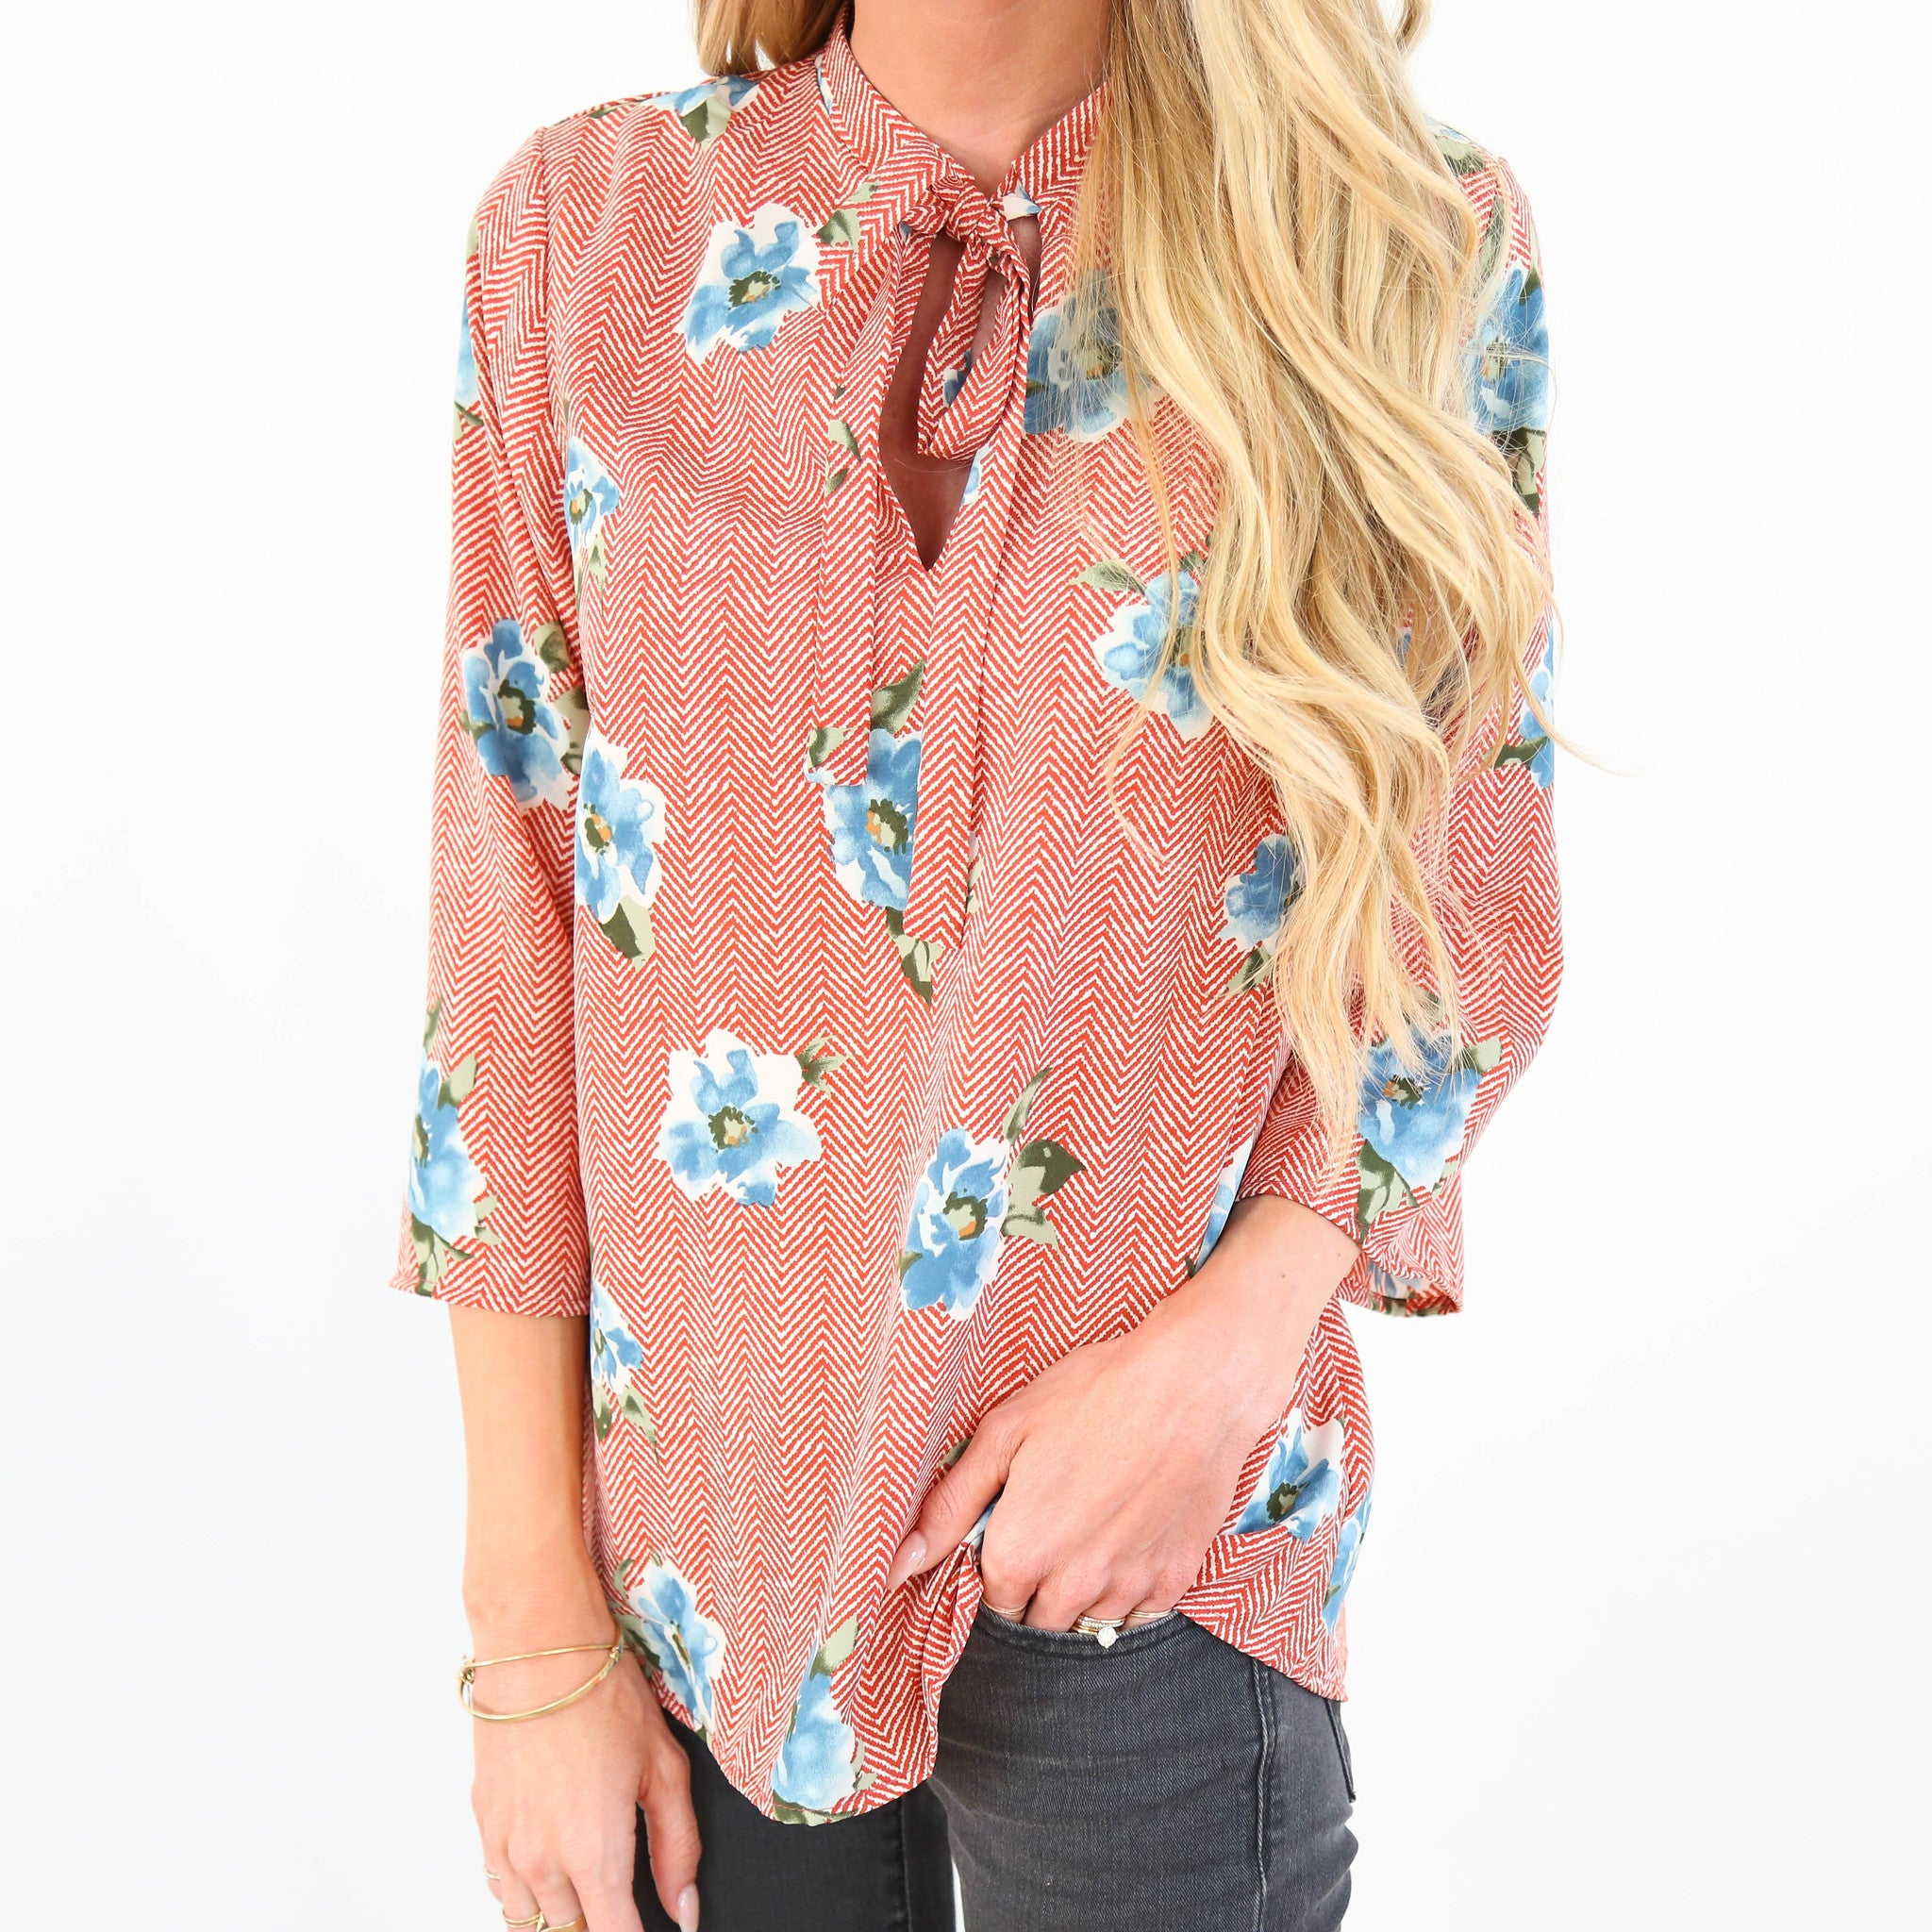 Faye Floral Top in Red Orange